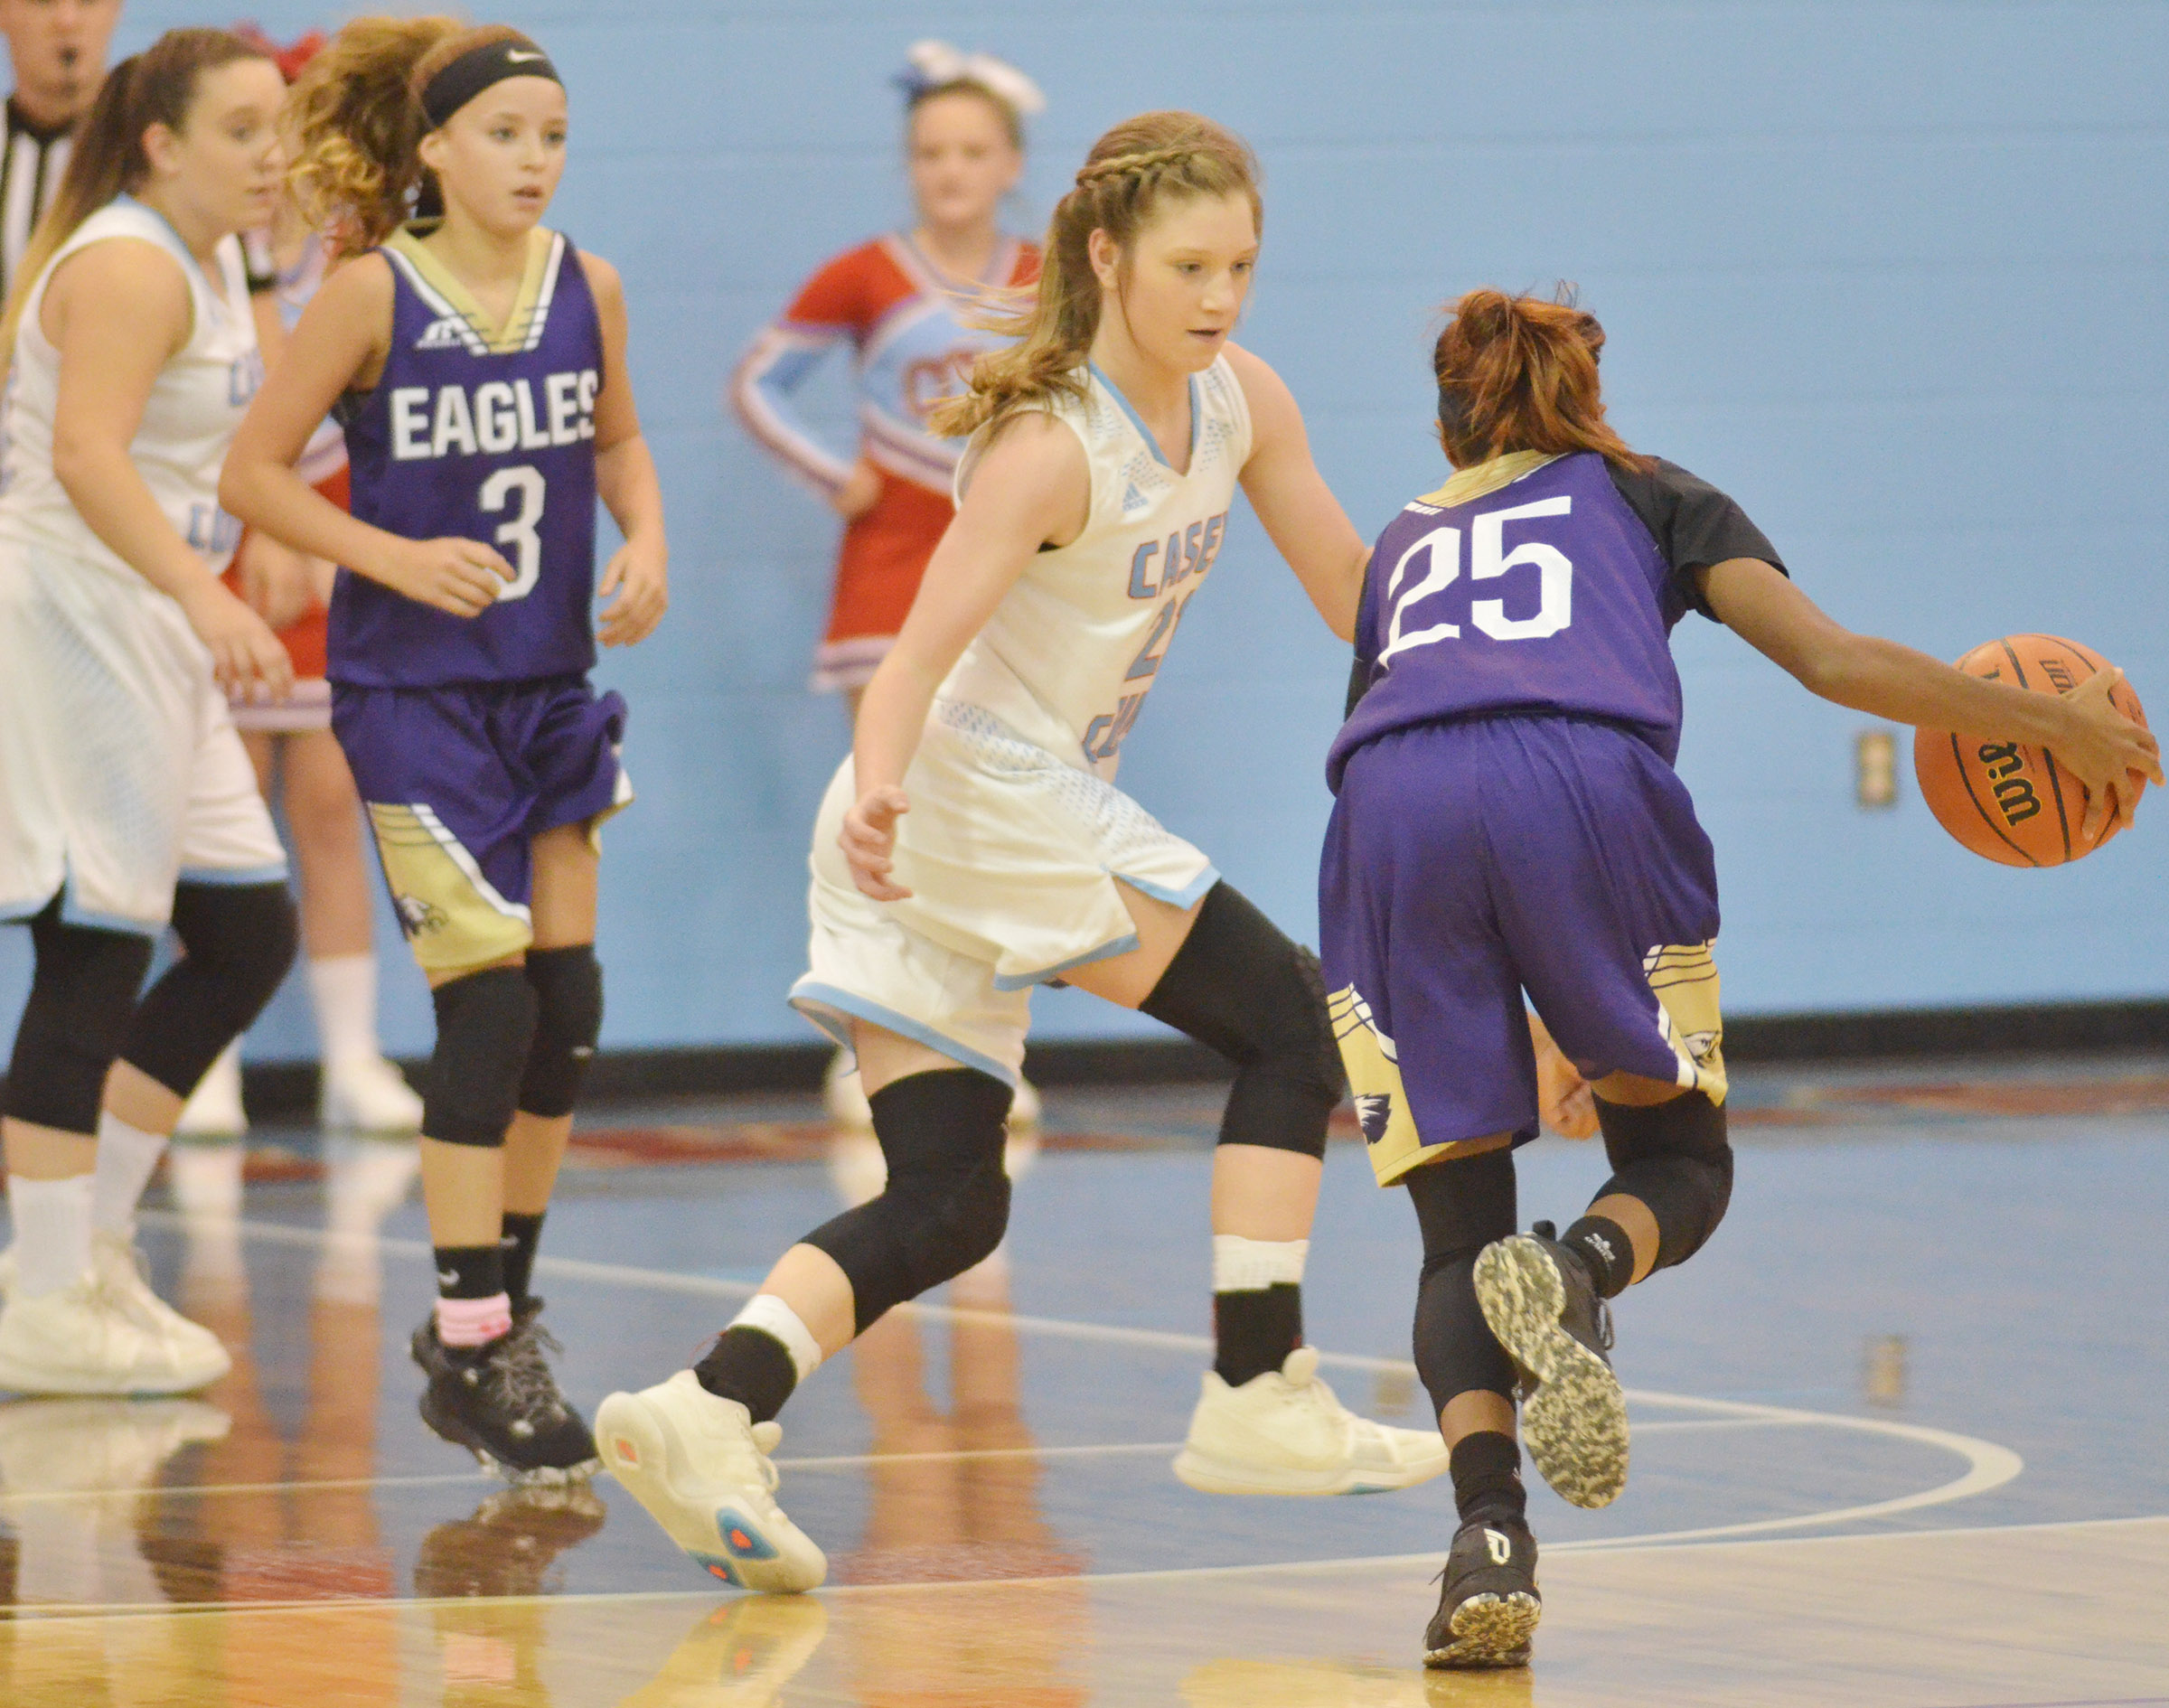 CMS eighth-grader Bri Gowdy drives the ball.